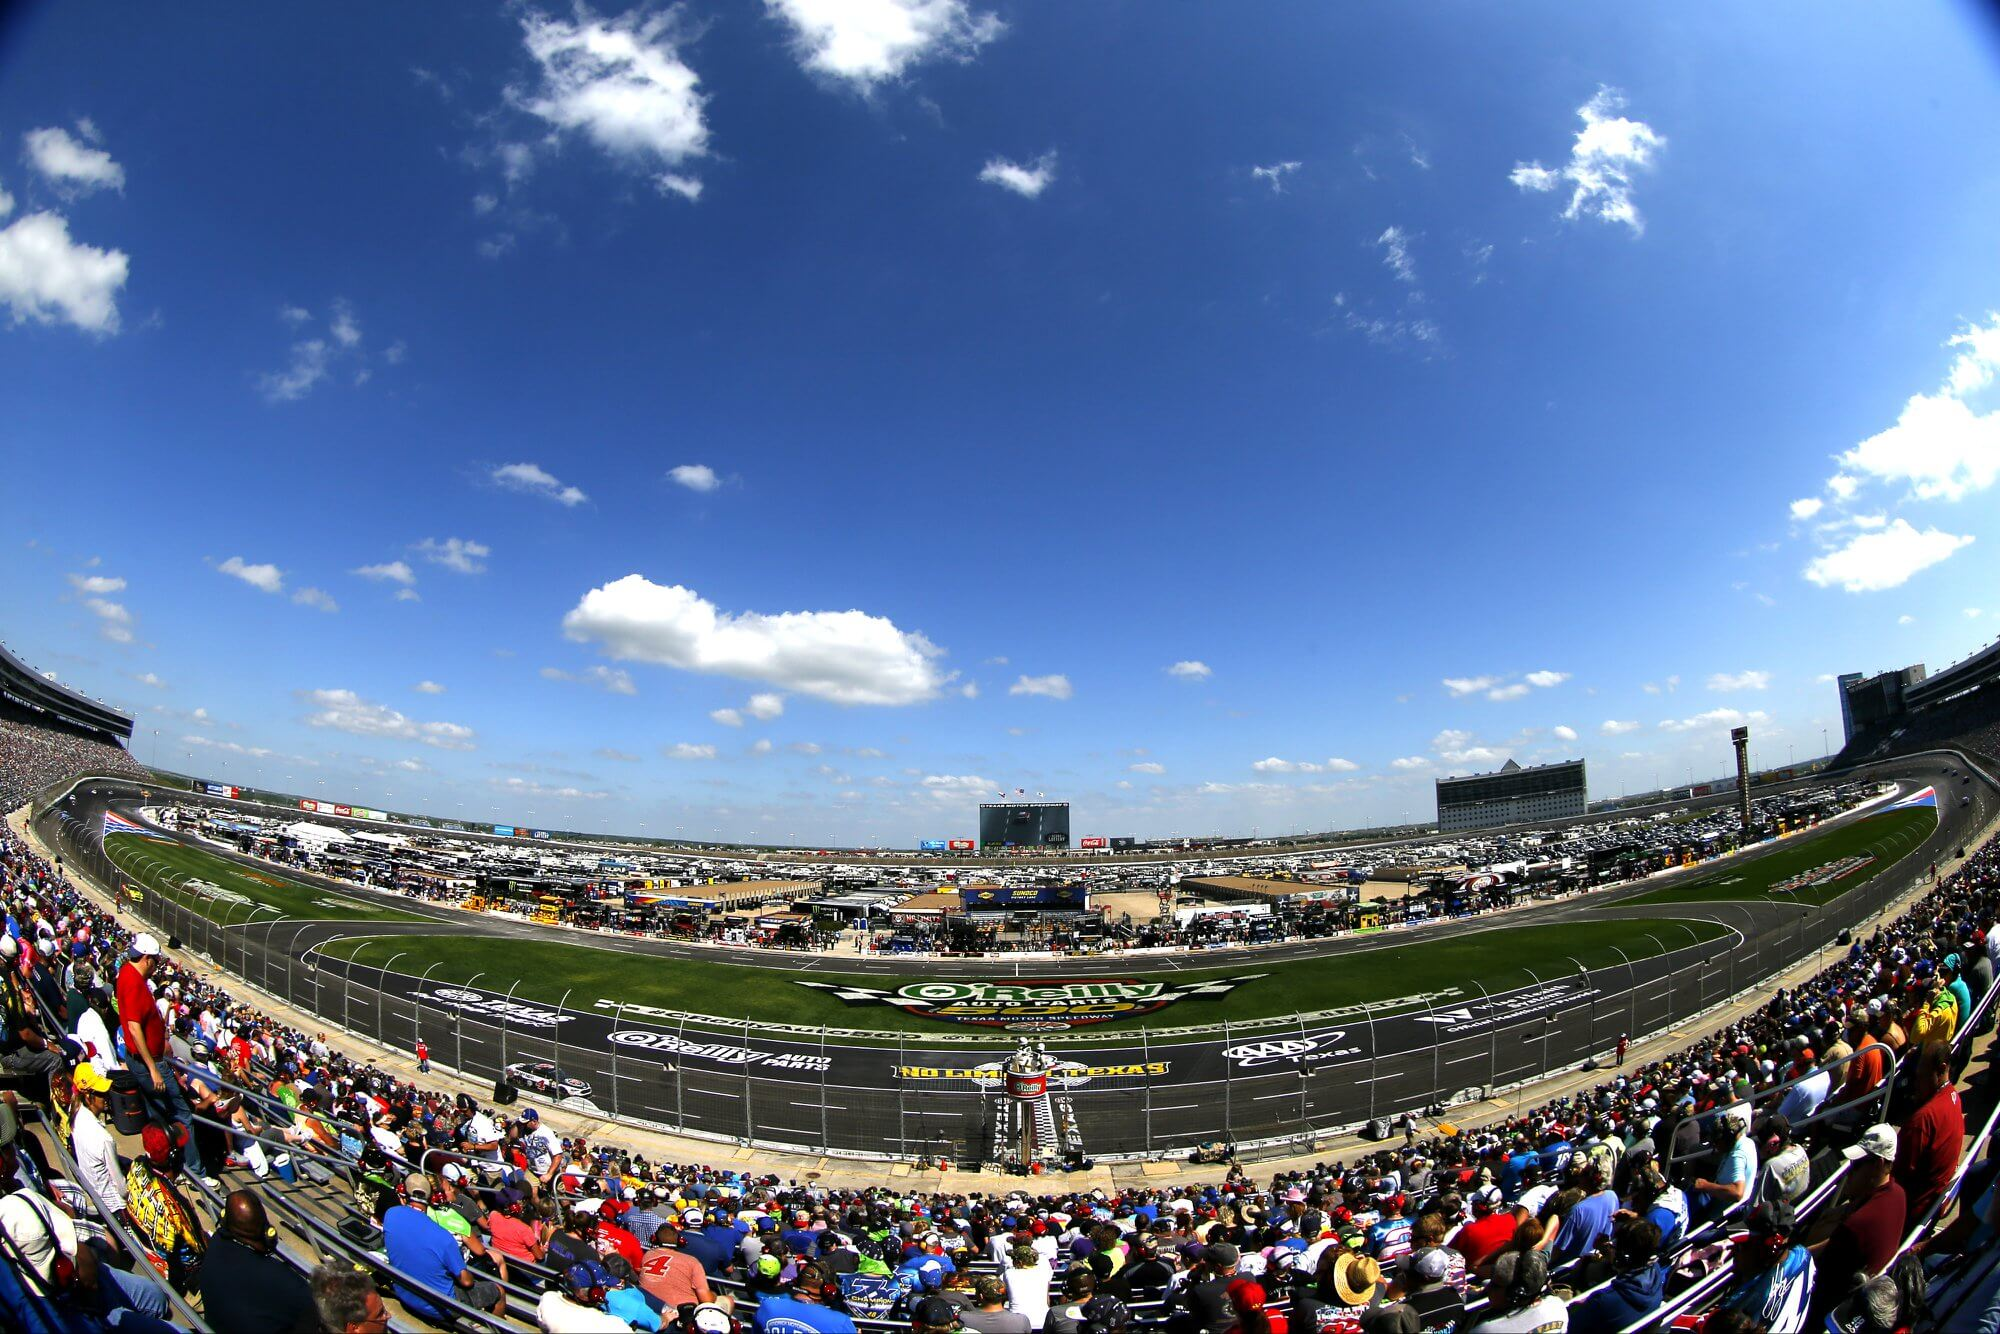 NASCAR fan dies from carbon monoxide poisoning following event at Texas Motor Speedway